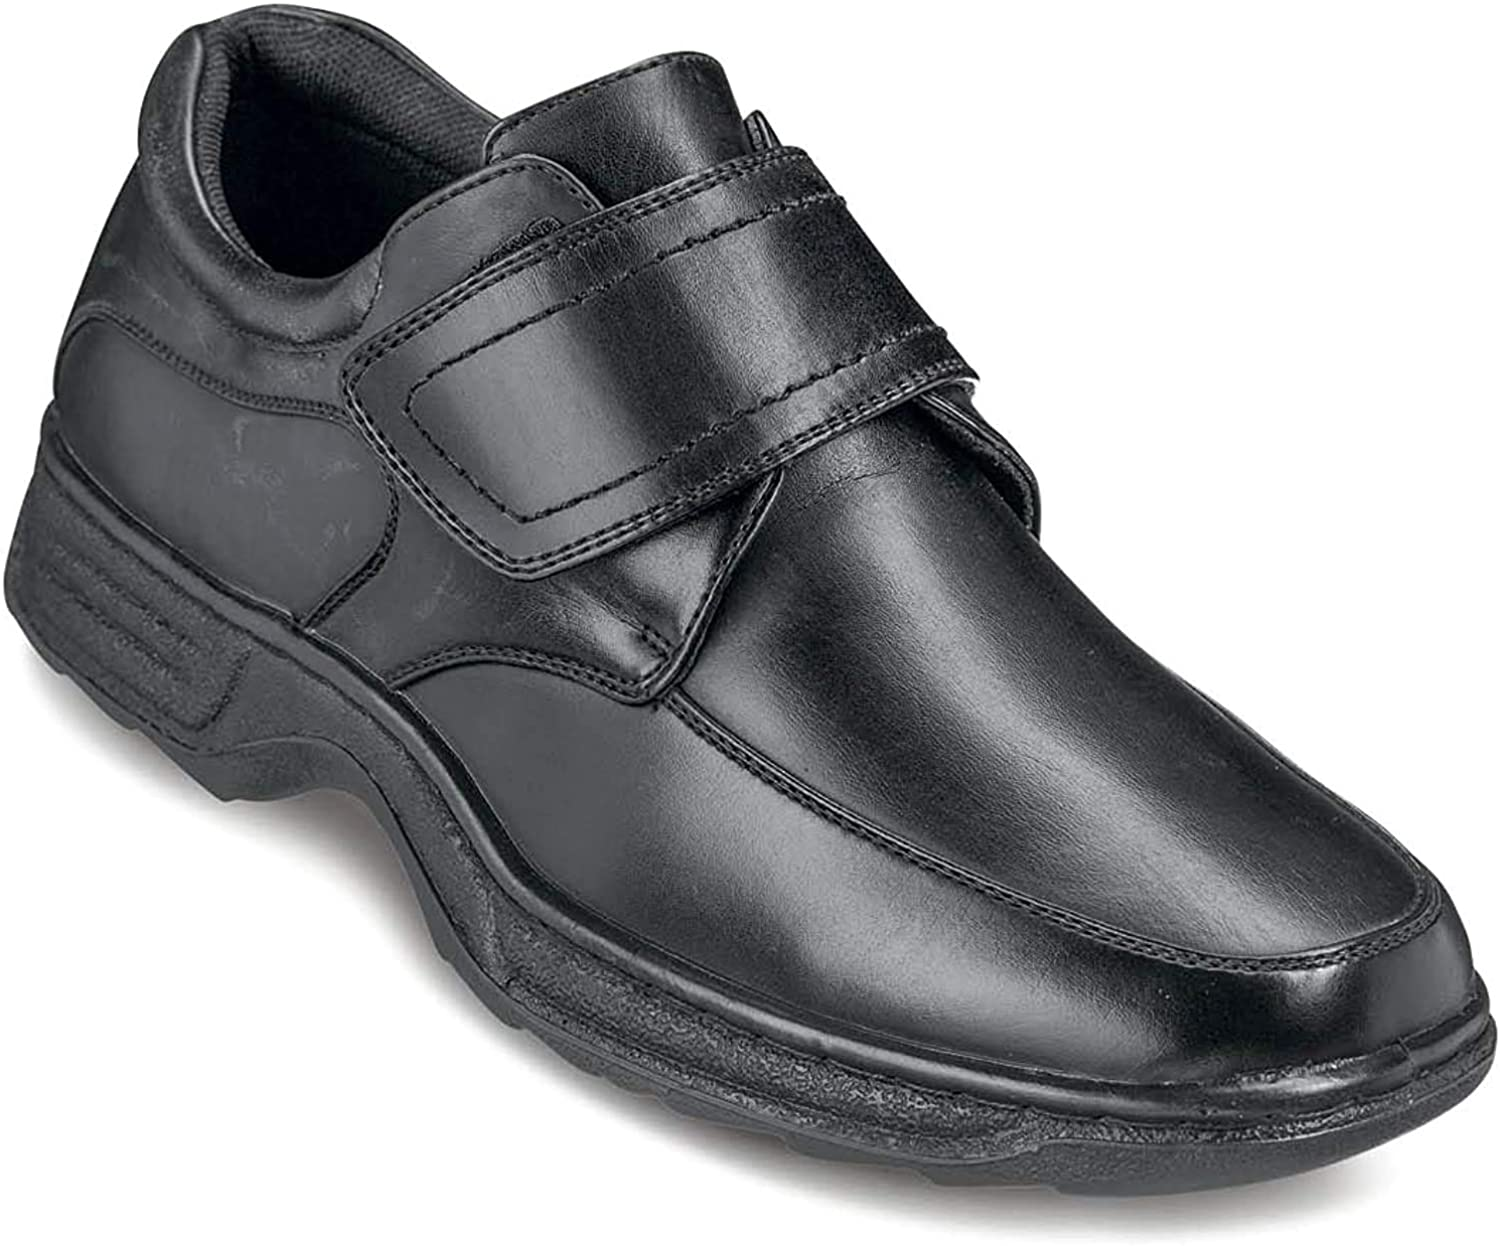 Cushion Walk Mens Touch Fasten Wide Fit Shoe with Gel Pad